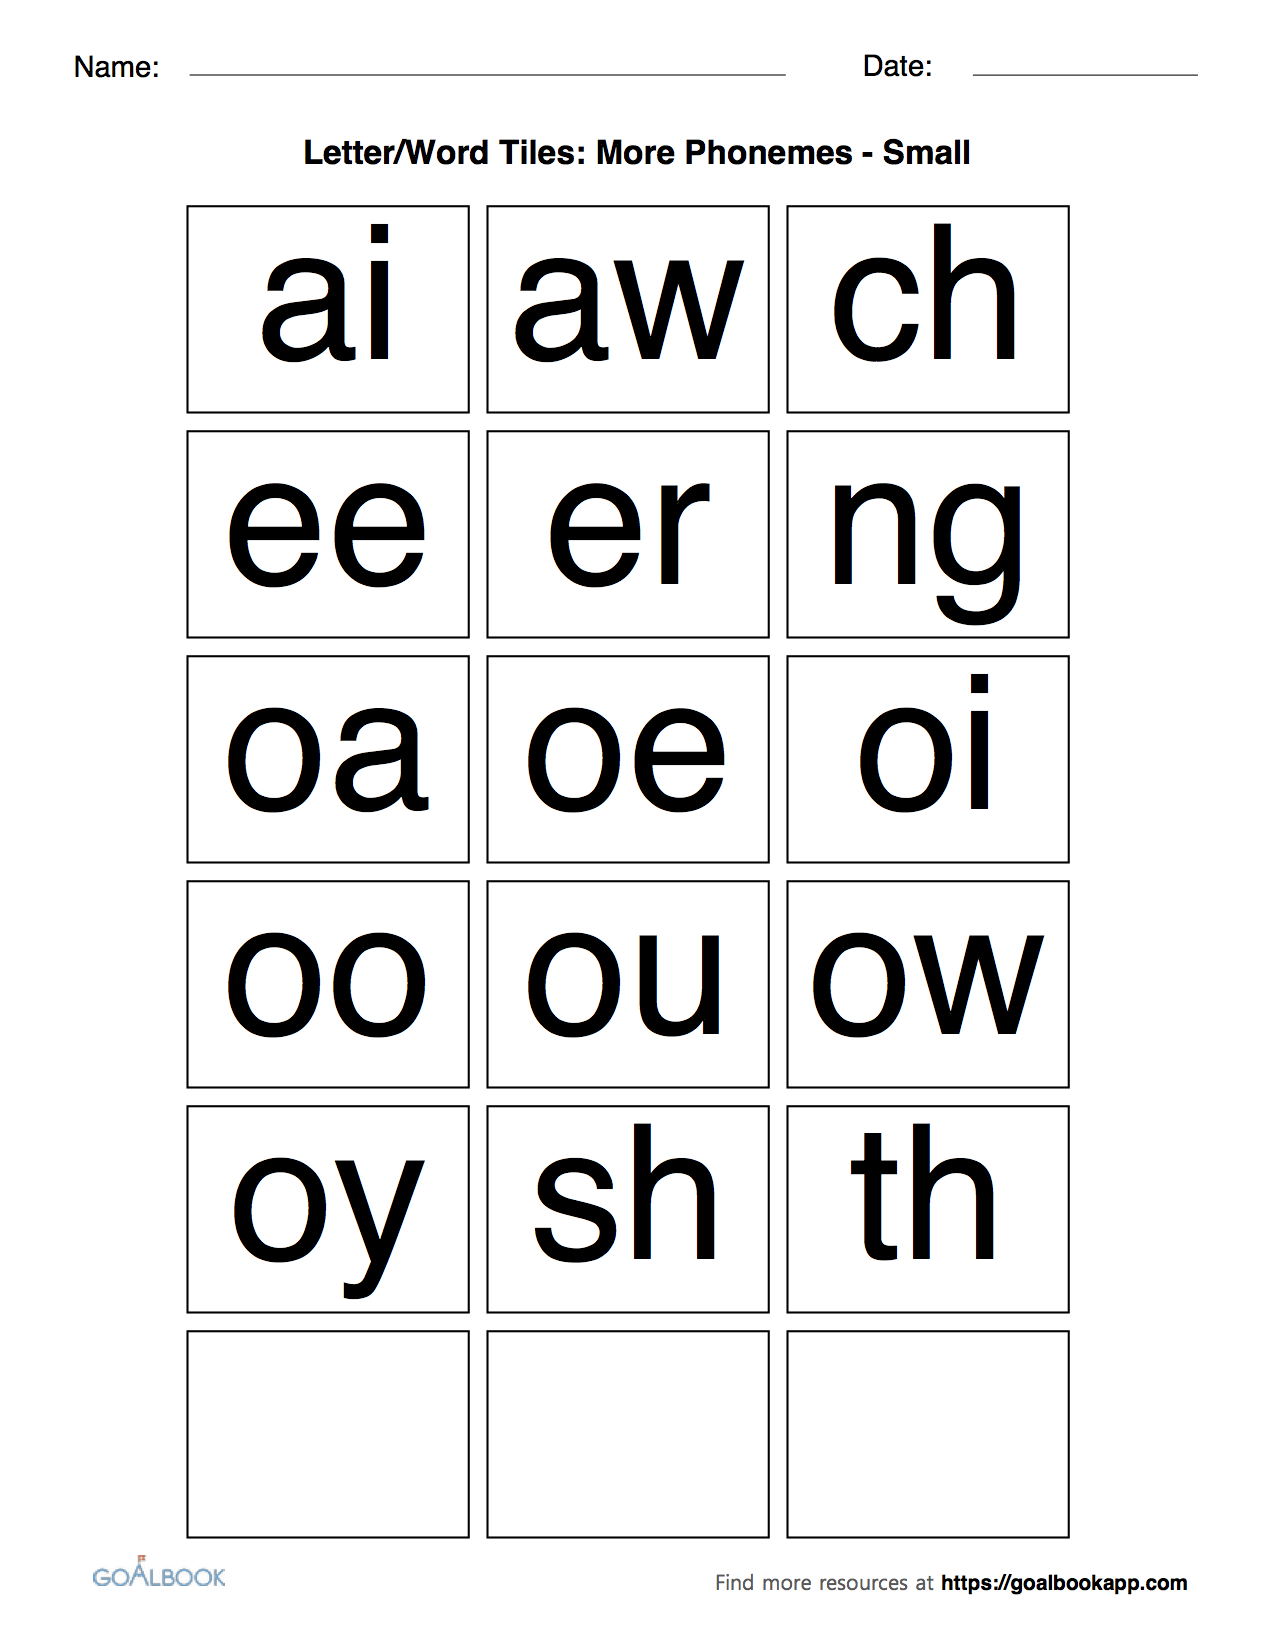 Small Common Phoneme Tiles